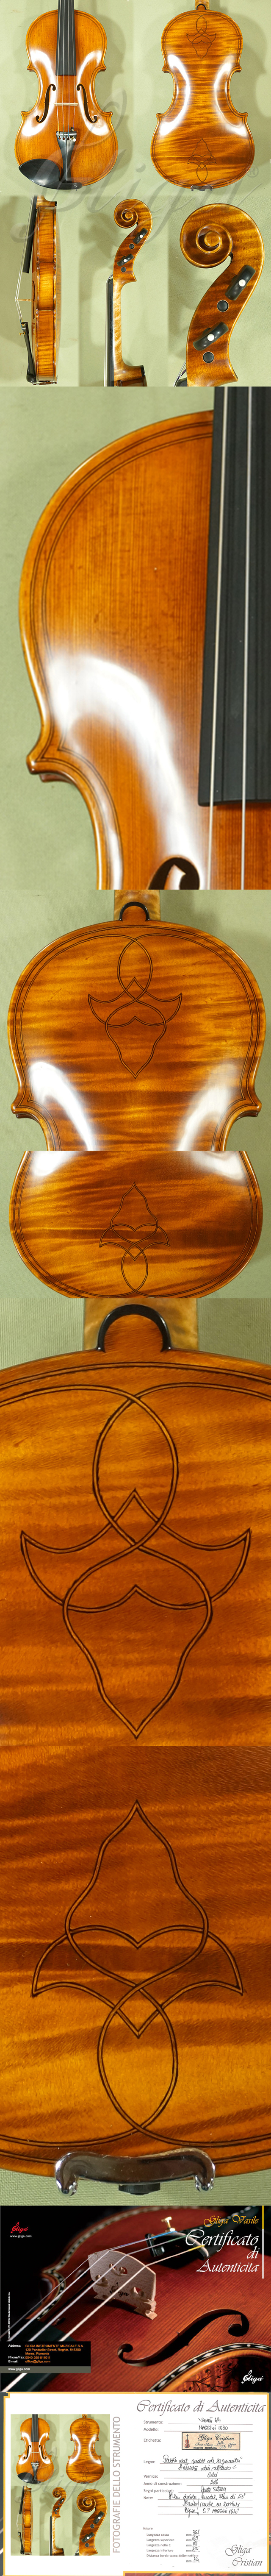 Antique Scratched 4/4 MAESTRO VASILE GLIGA Inlaid Double Purfling with Flower Design One Piece B